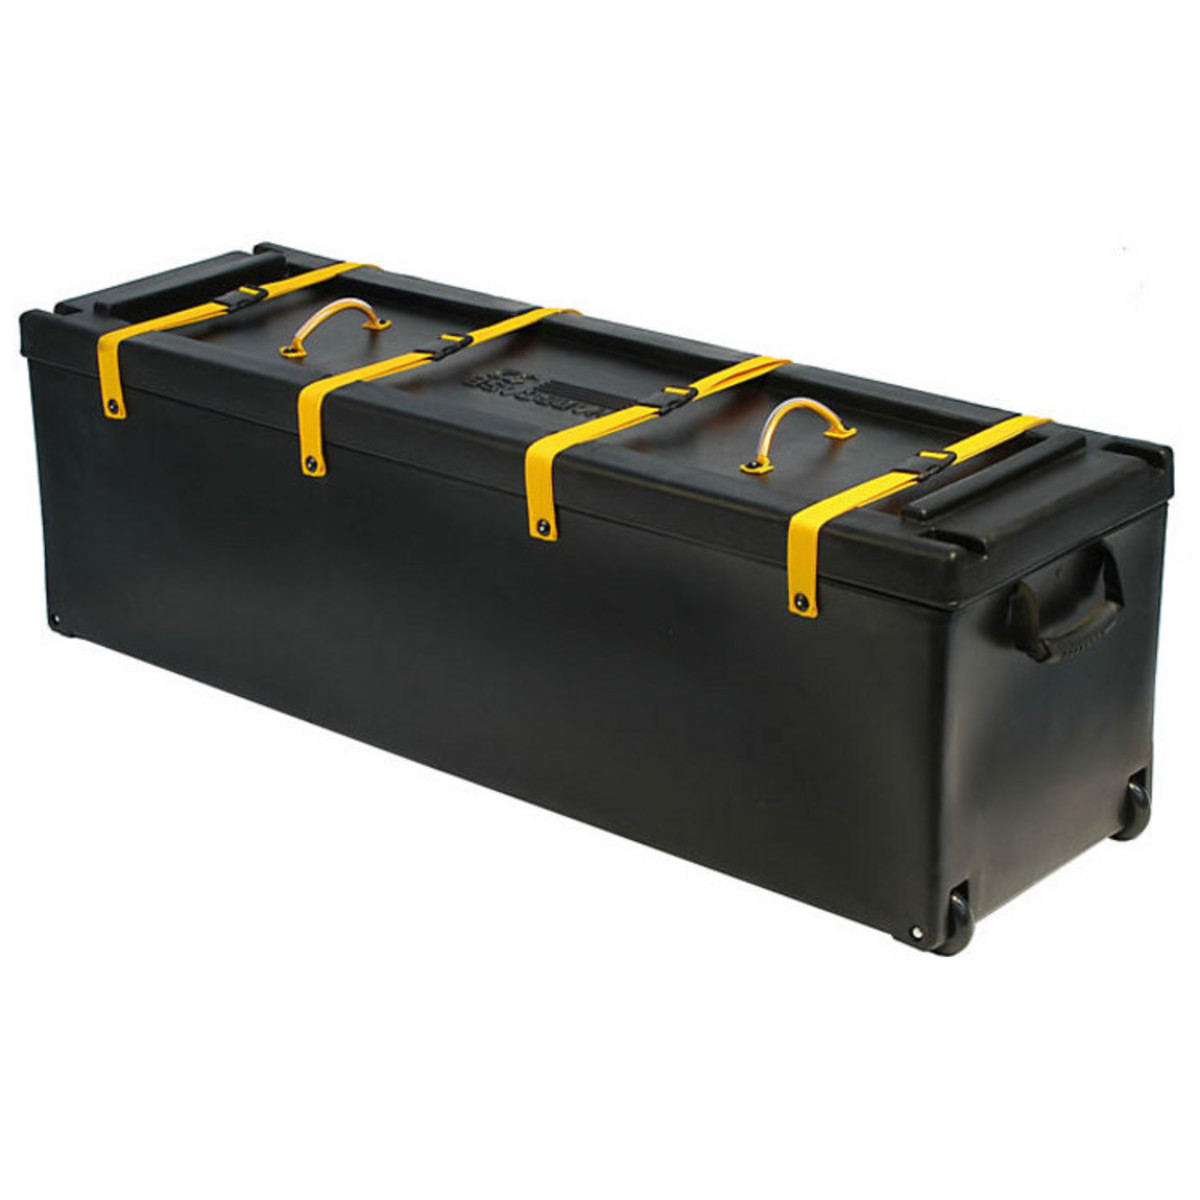 hardcase 52 hardware case with wheels box opened at gear4music. Black Bedroom Furniture Sets. Home Design Ideas